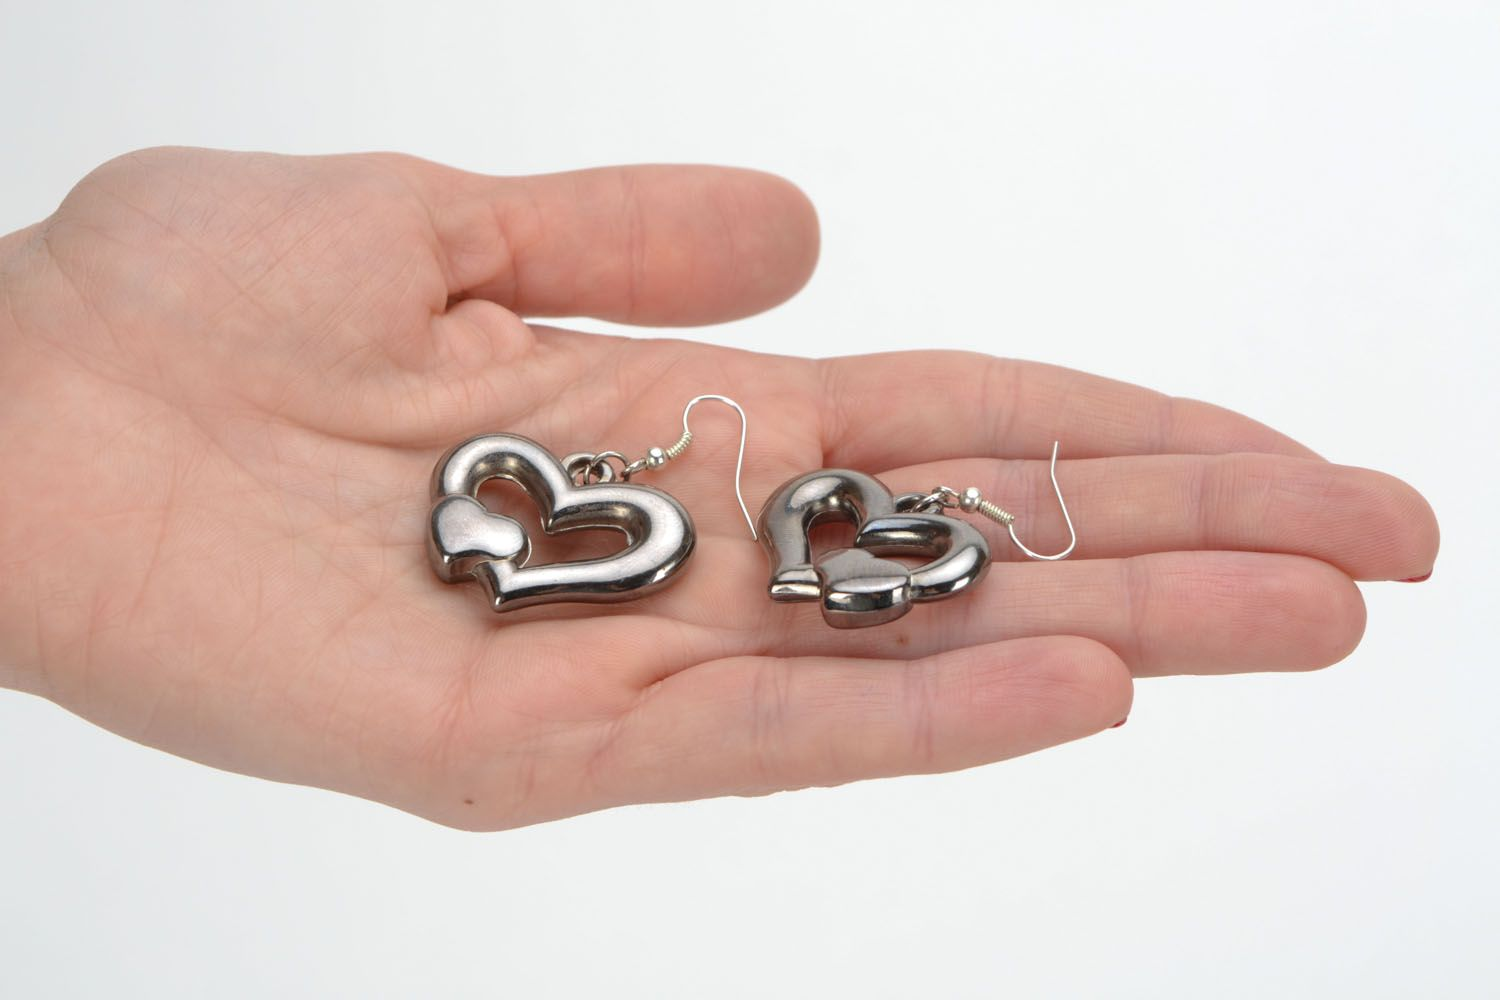 Metal earrings with heart-shaped charms photo 2